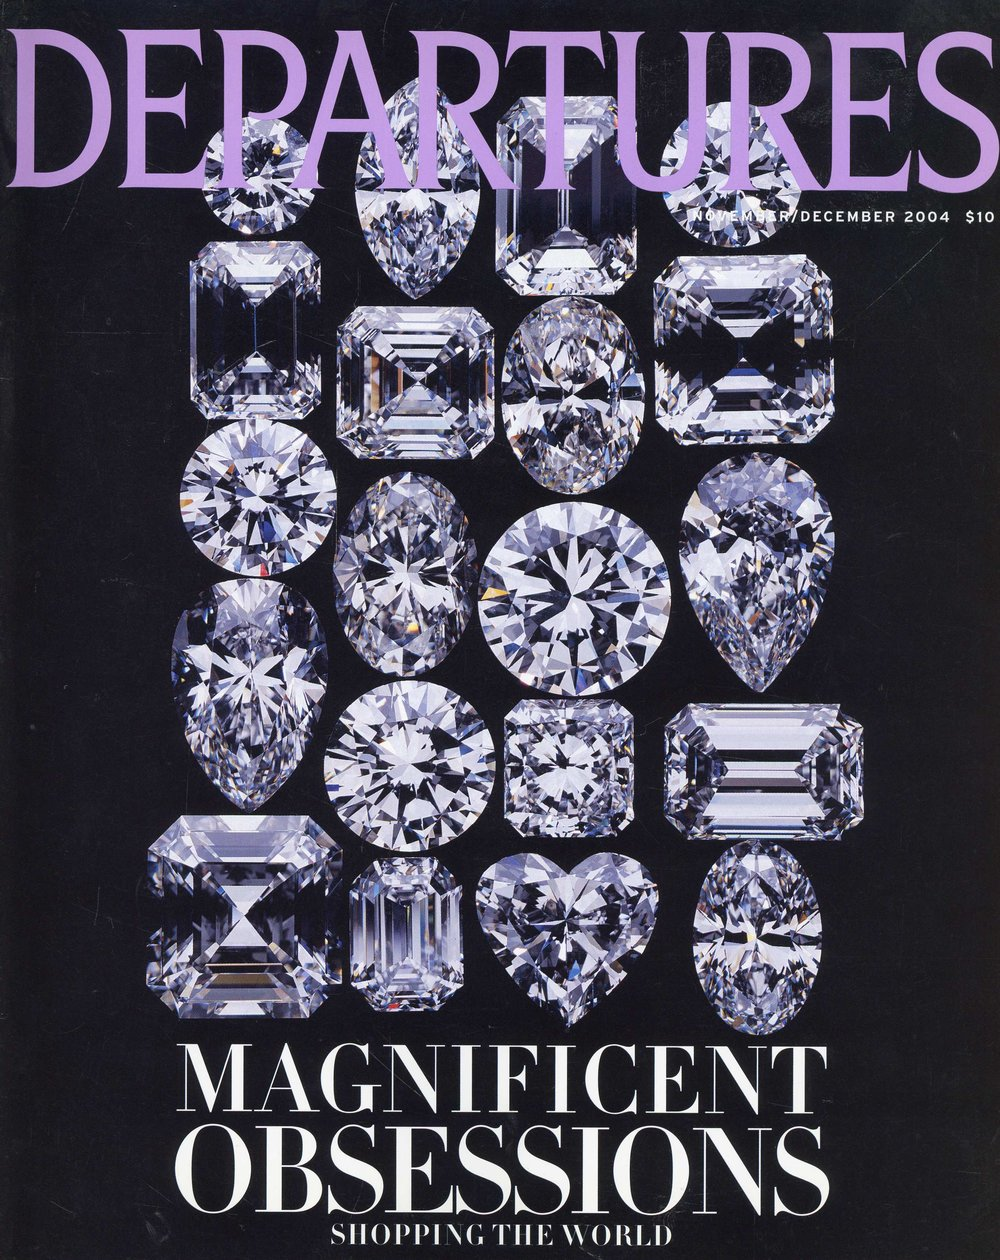 Departures_Nov-Dec 04_Cover.jpg